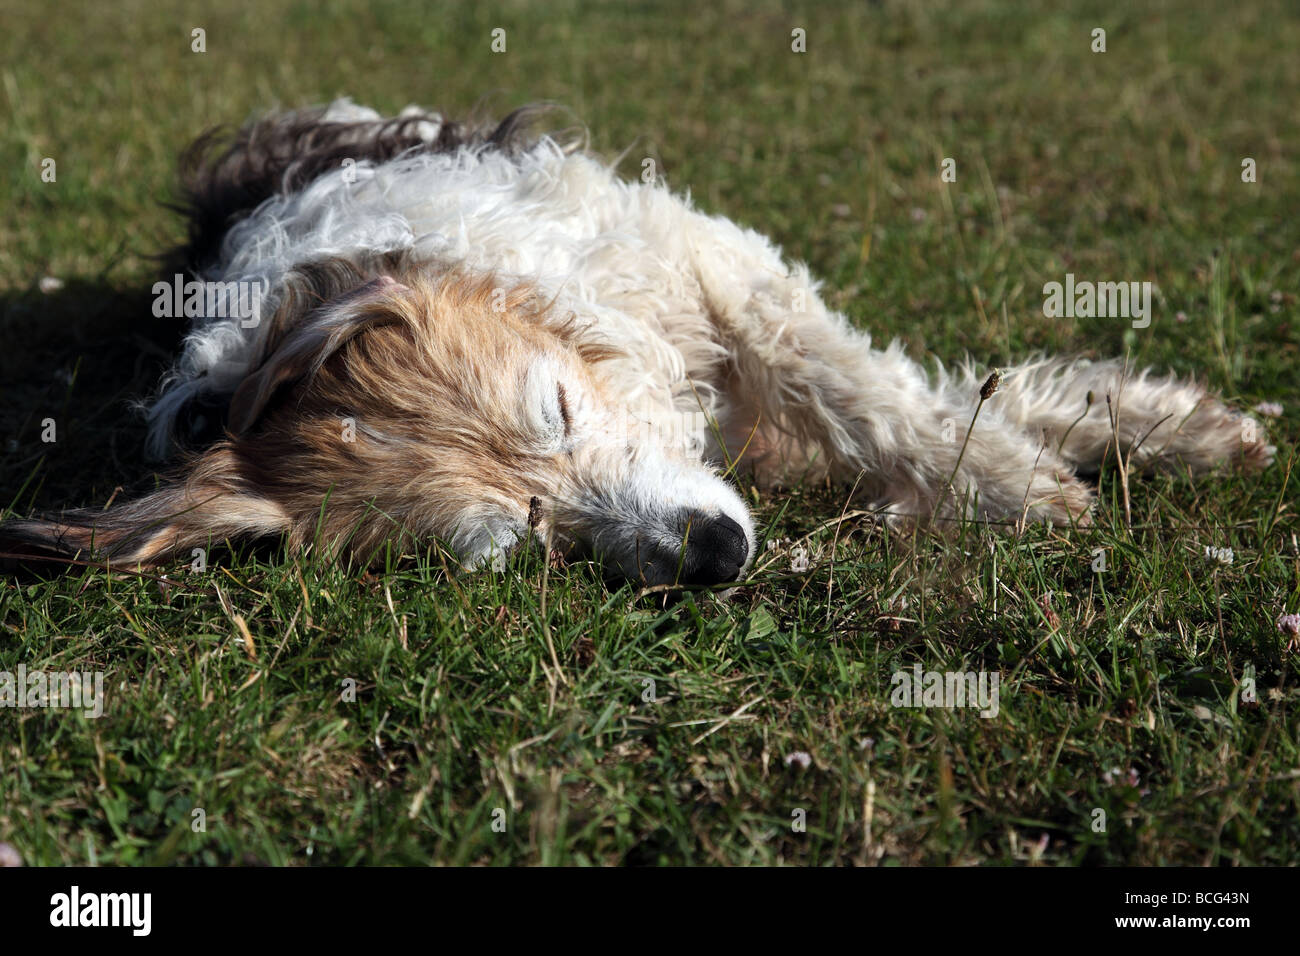 Crossbreed dog lying flat out asleep in the sunshine - Stock Image